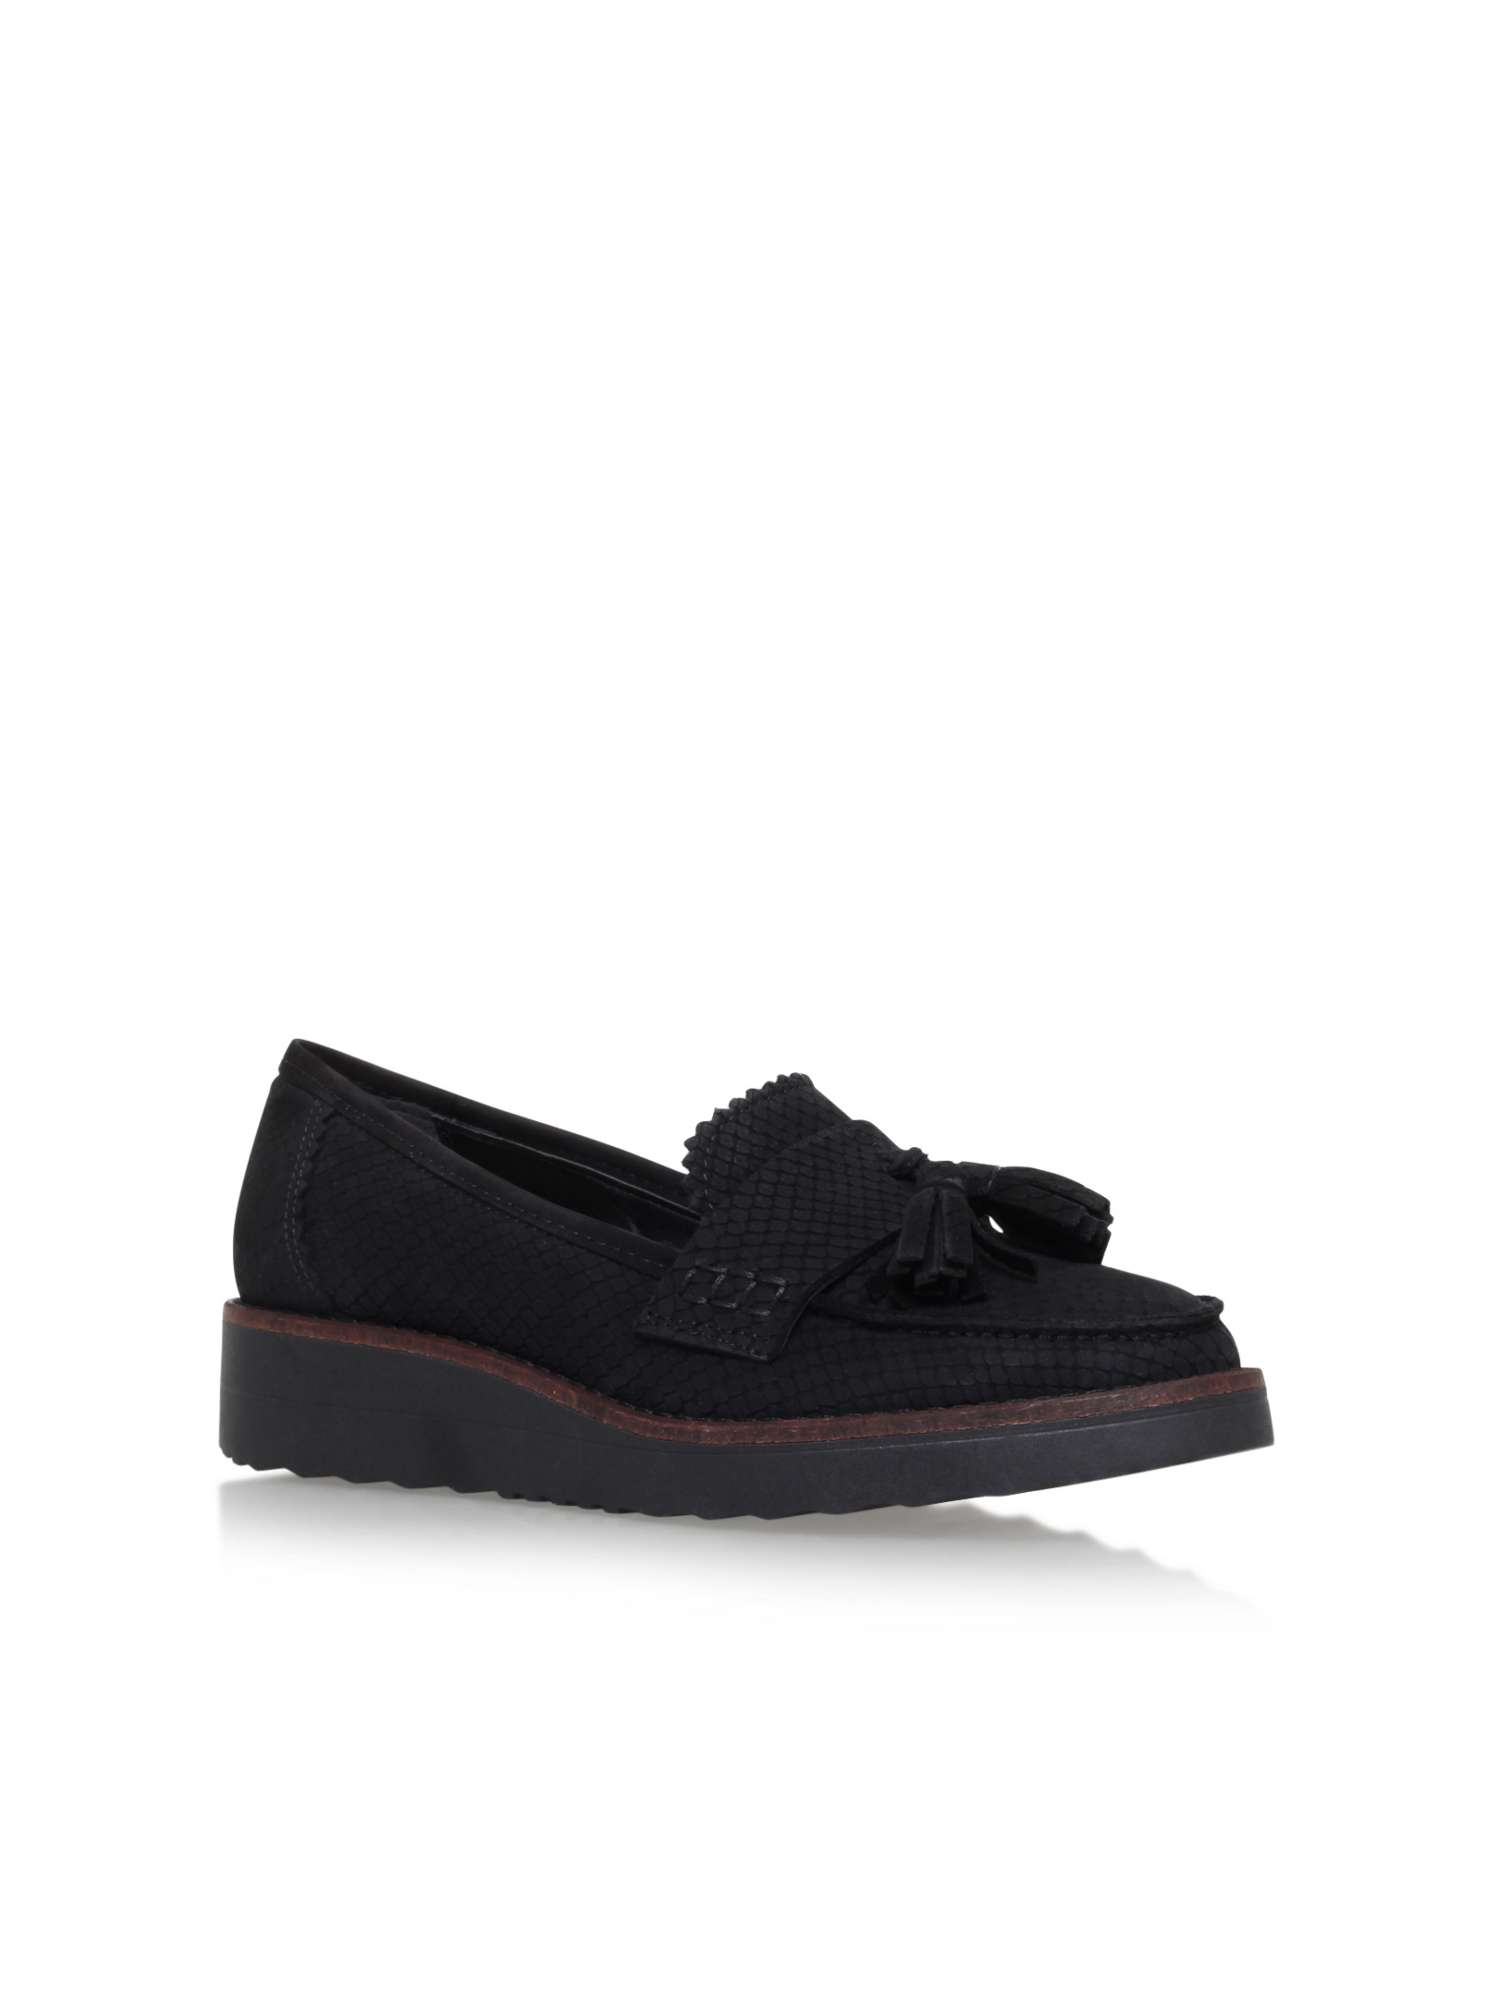 CARVELA Lynora leather loafers Black - N8649